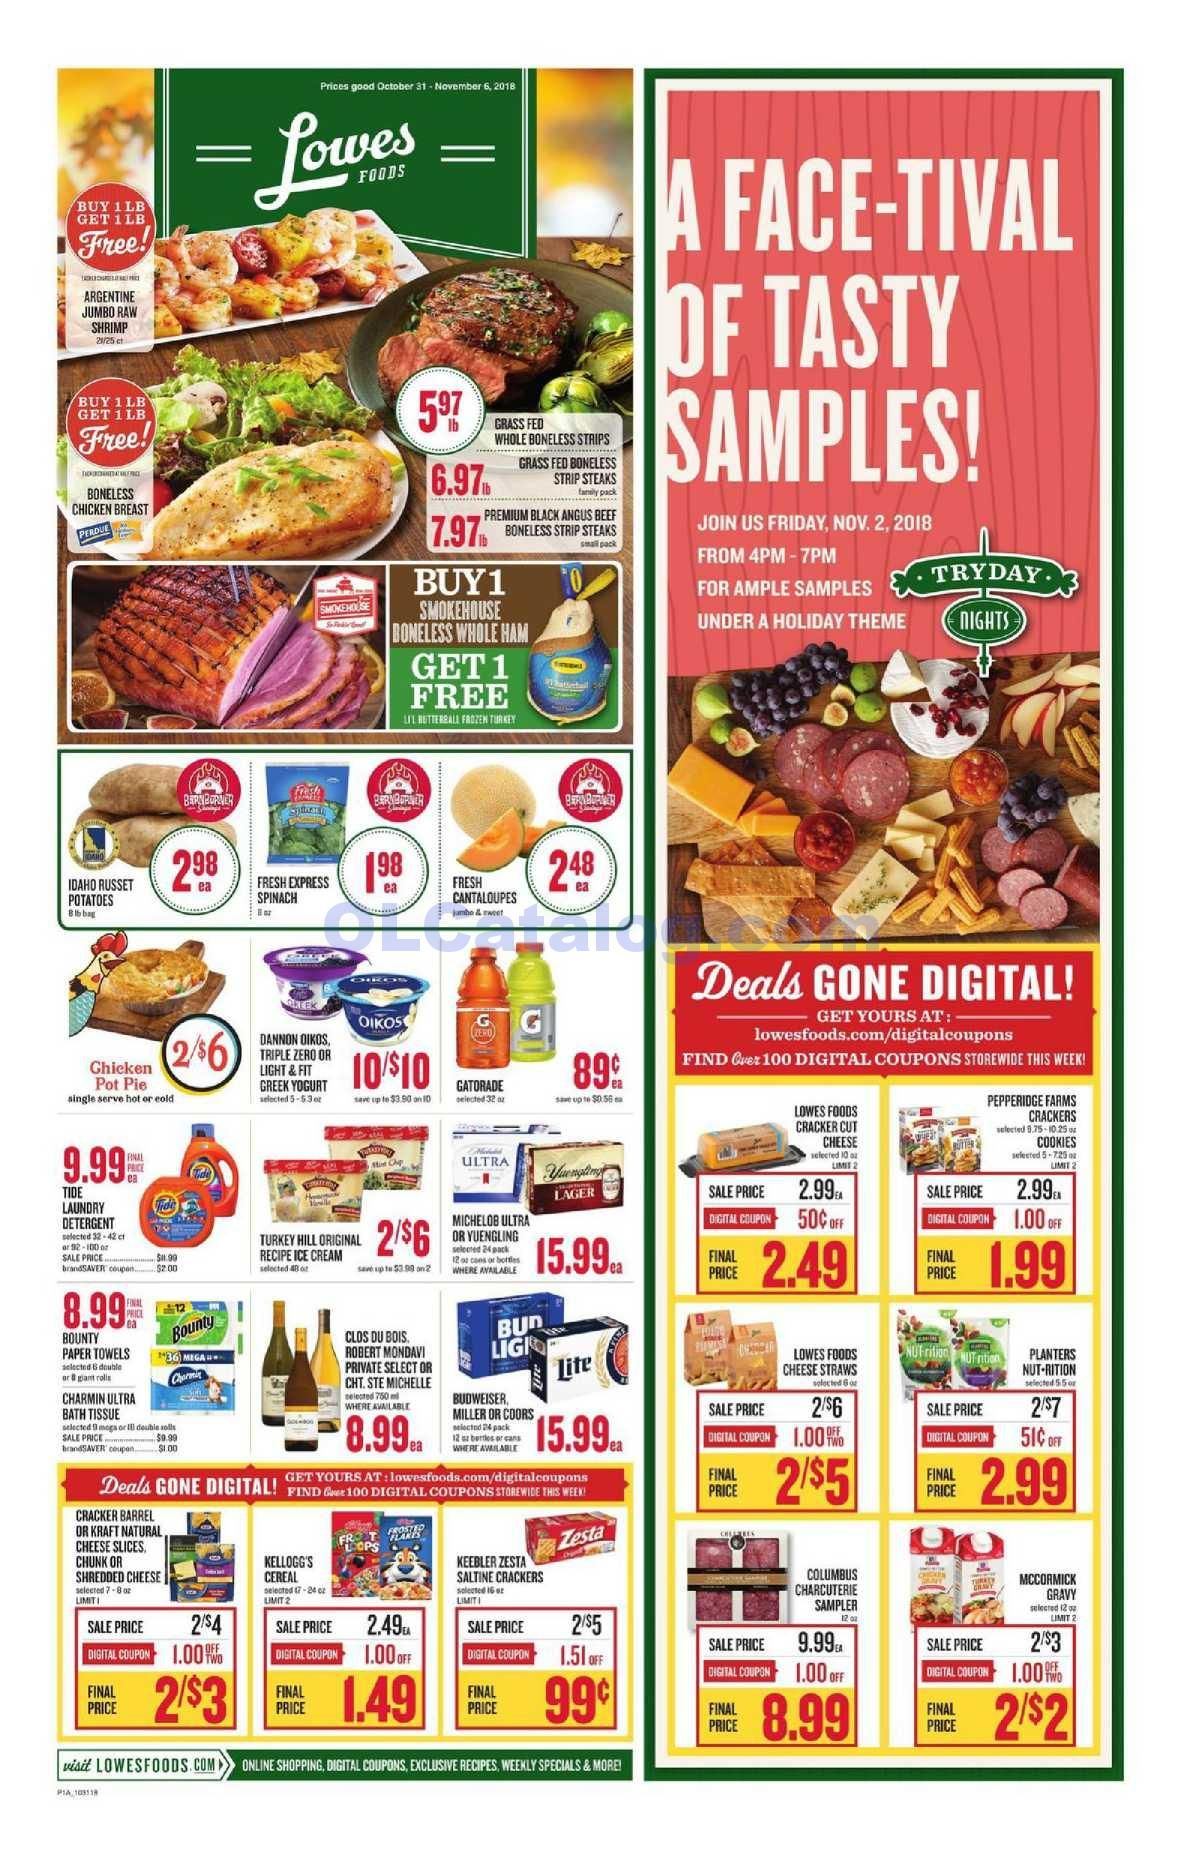 Lowes foods Weekly Ad October 31 November 6, 2018. View